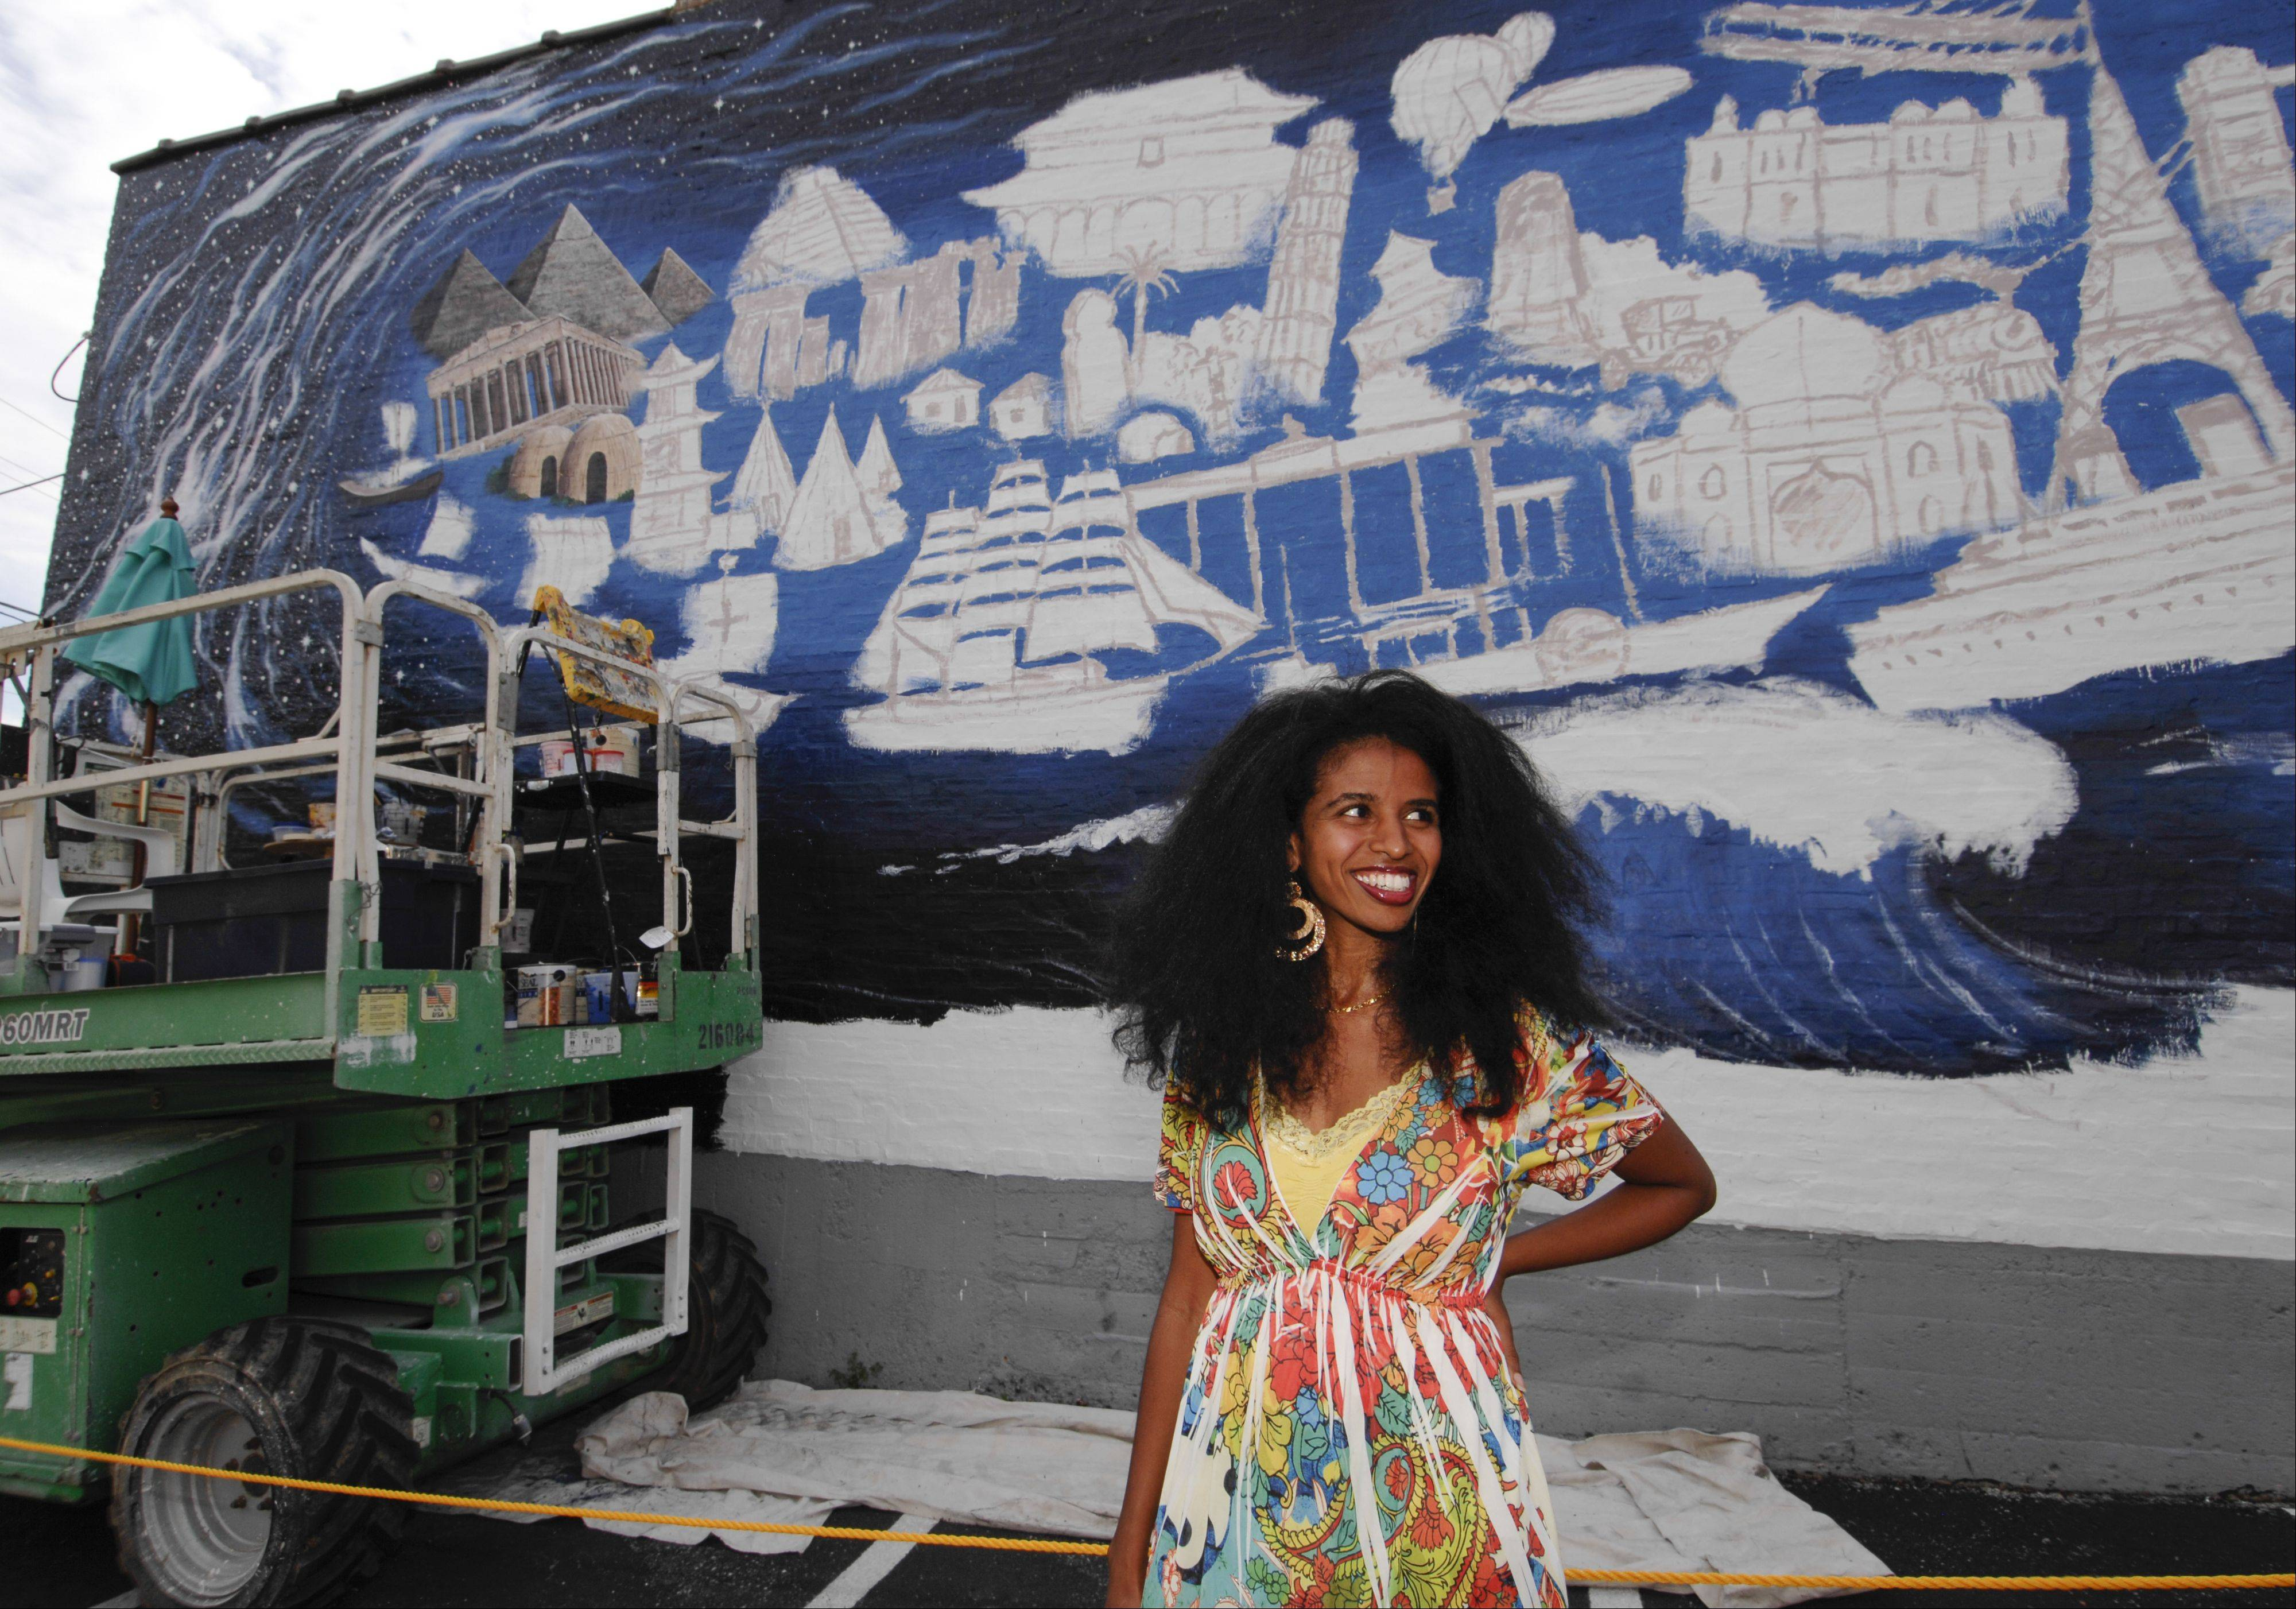 Wheaton resident Mehret Asgedom's poem inspired the mural by artist R.J. Ogren that will celebrate the city's diversity and the contributions of its many immigrants.